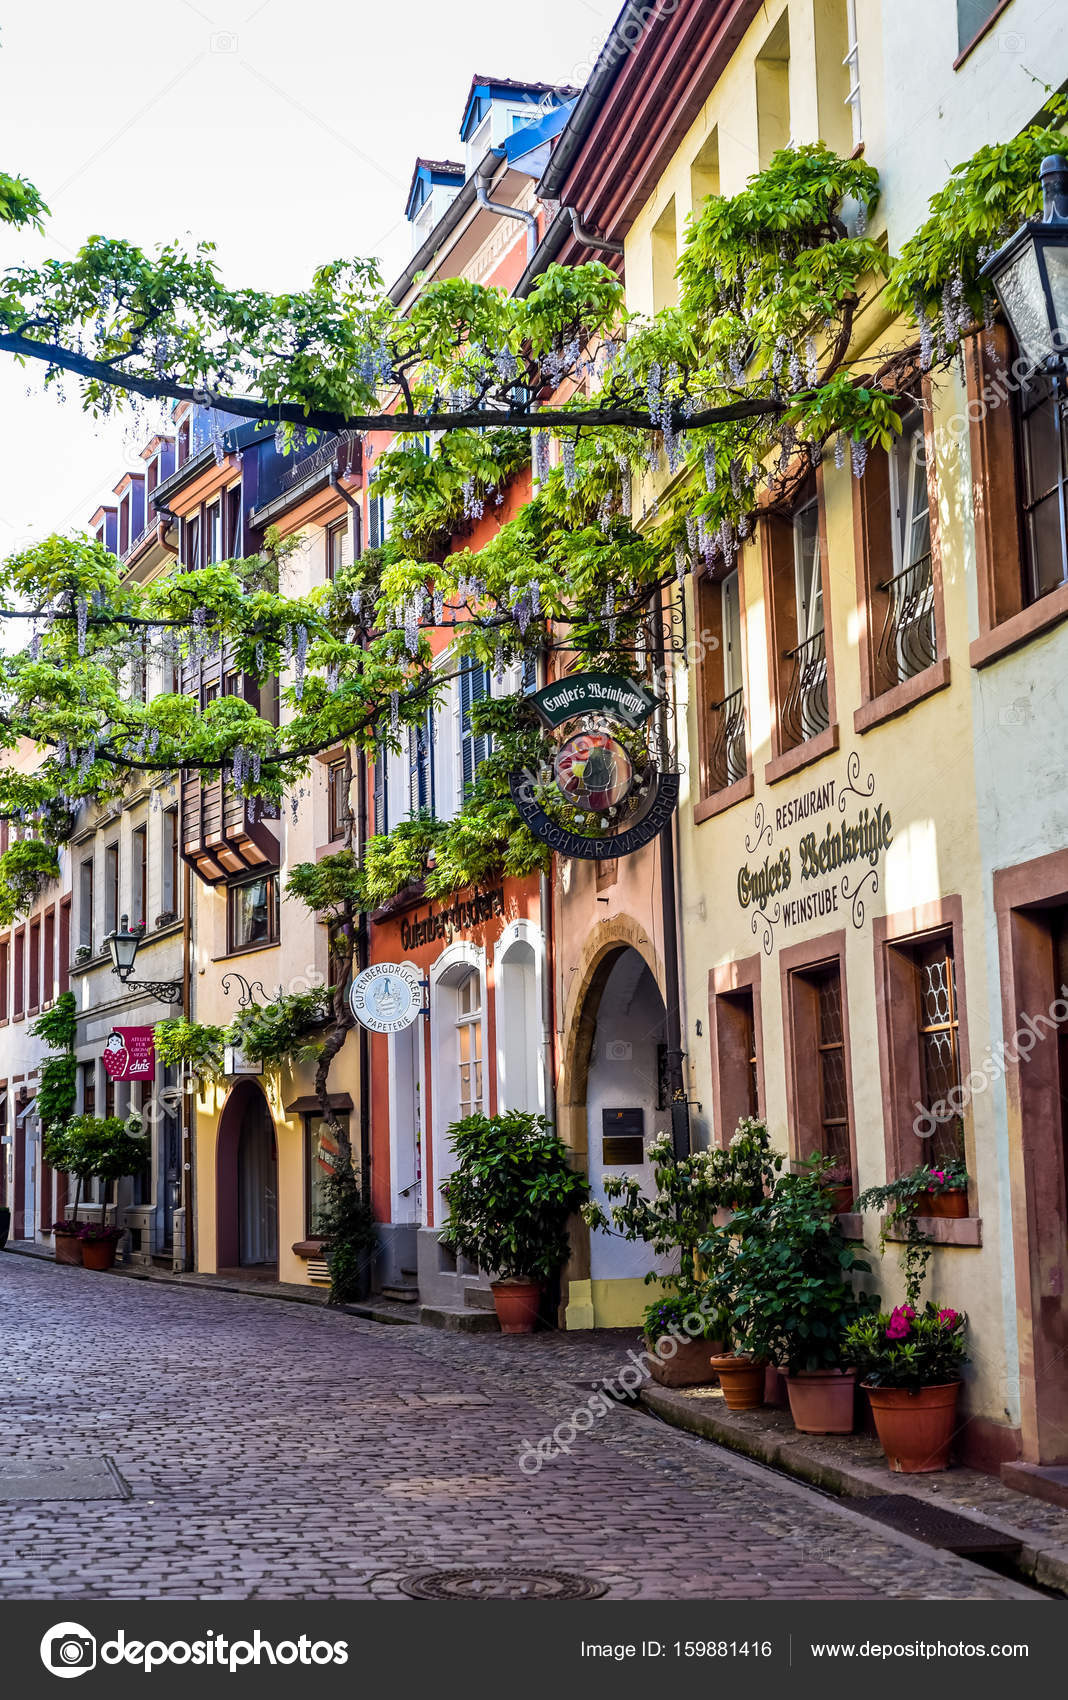 FREIBURG IM BREISGAU, GERMANY - May 17, 2017: old town ... on black forest, zürich, lake constance,